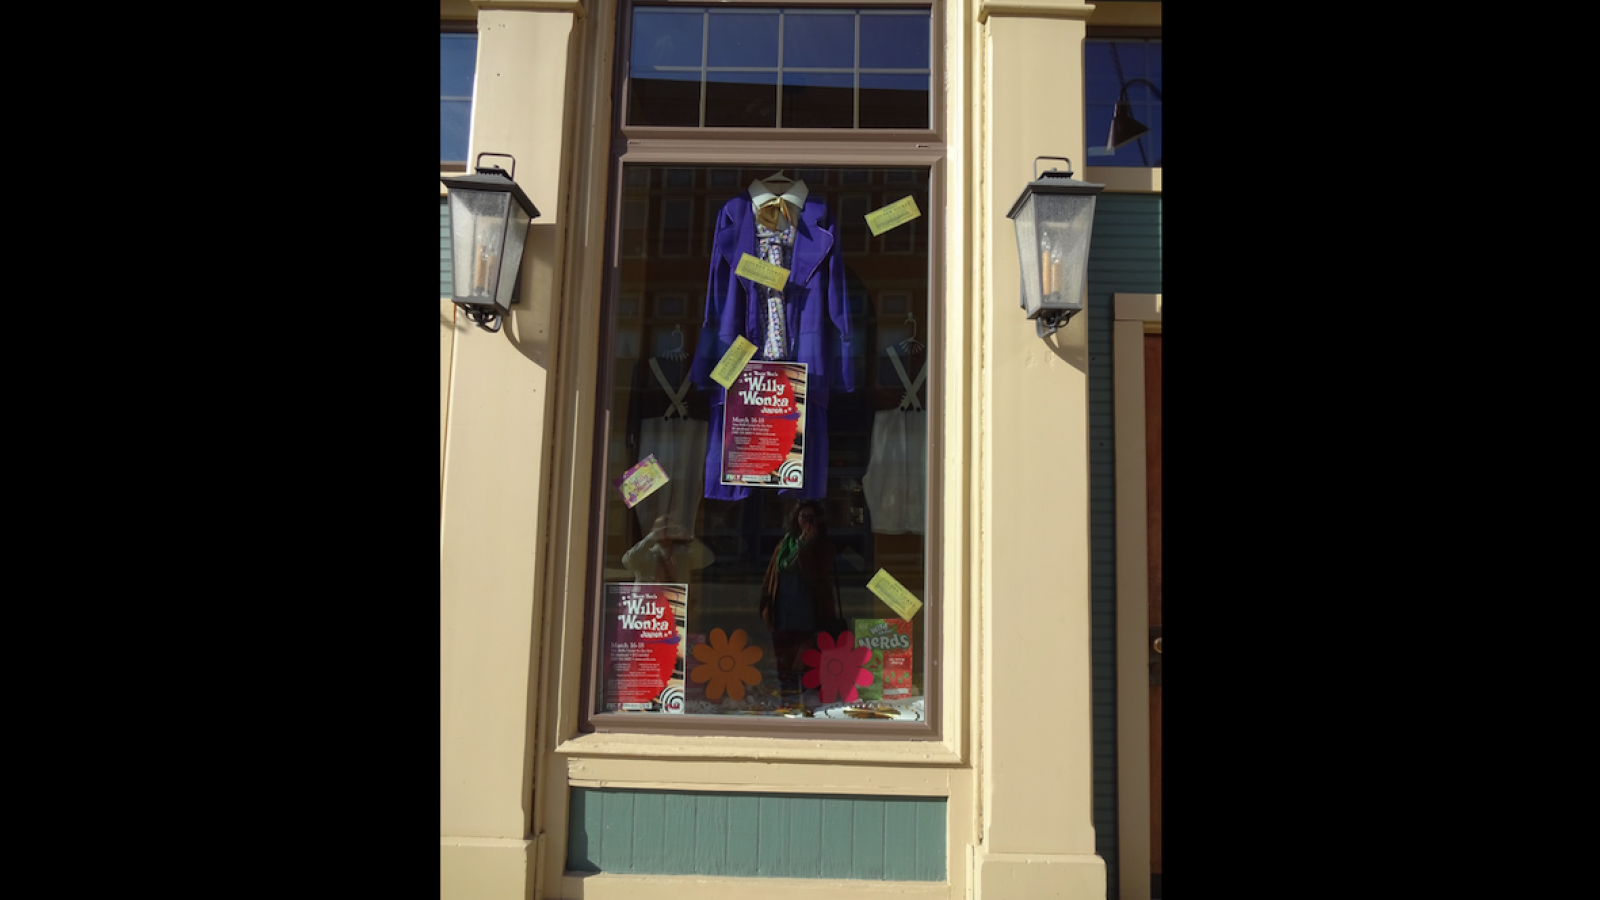 Storefront display with Willy Wonka's coat